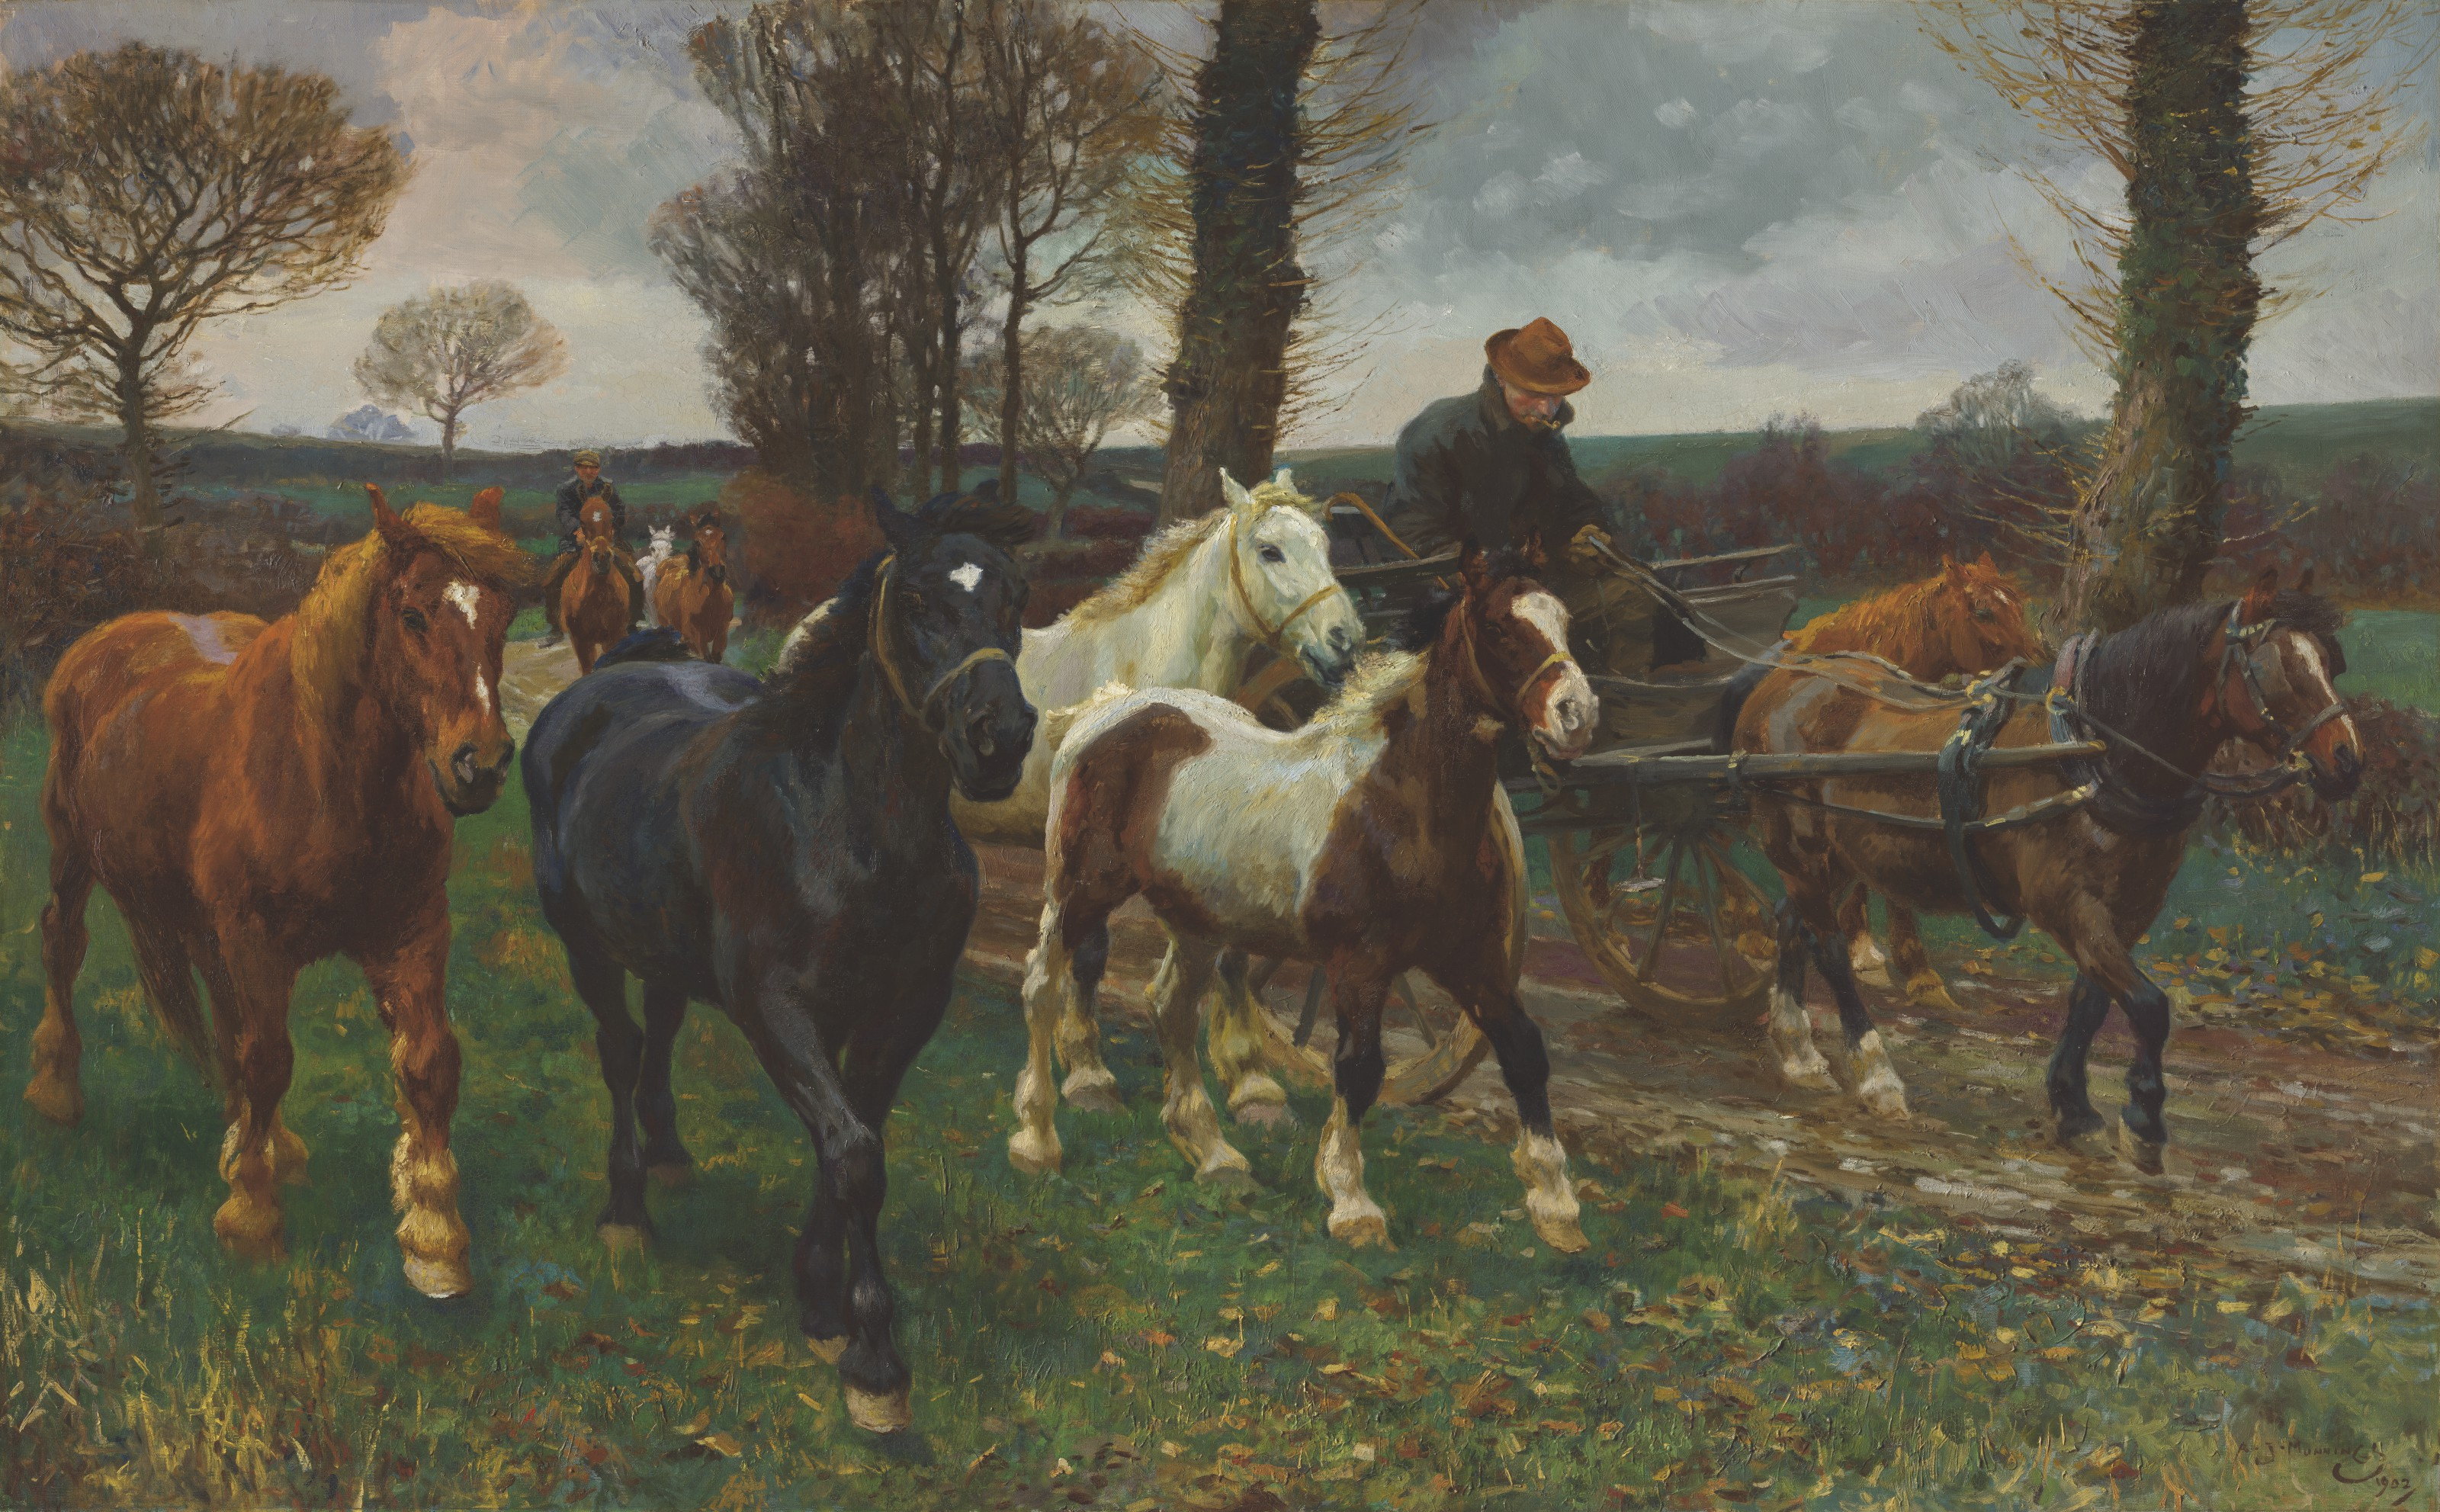 Sir Alfred James Munnings, P.R.A., R.W.S. (1878-1959), The Vagabonds, 1902. Oil on canvas. 50⅜ x 80½  in (128 x 204.5  cm). Estimate £700,000-1,000,000. Offered in The B.J. Eastwood Collection Important Sporting and Irish Pictures on 9 July 2021 at Christie's in London